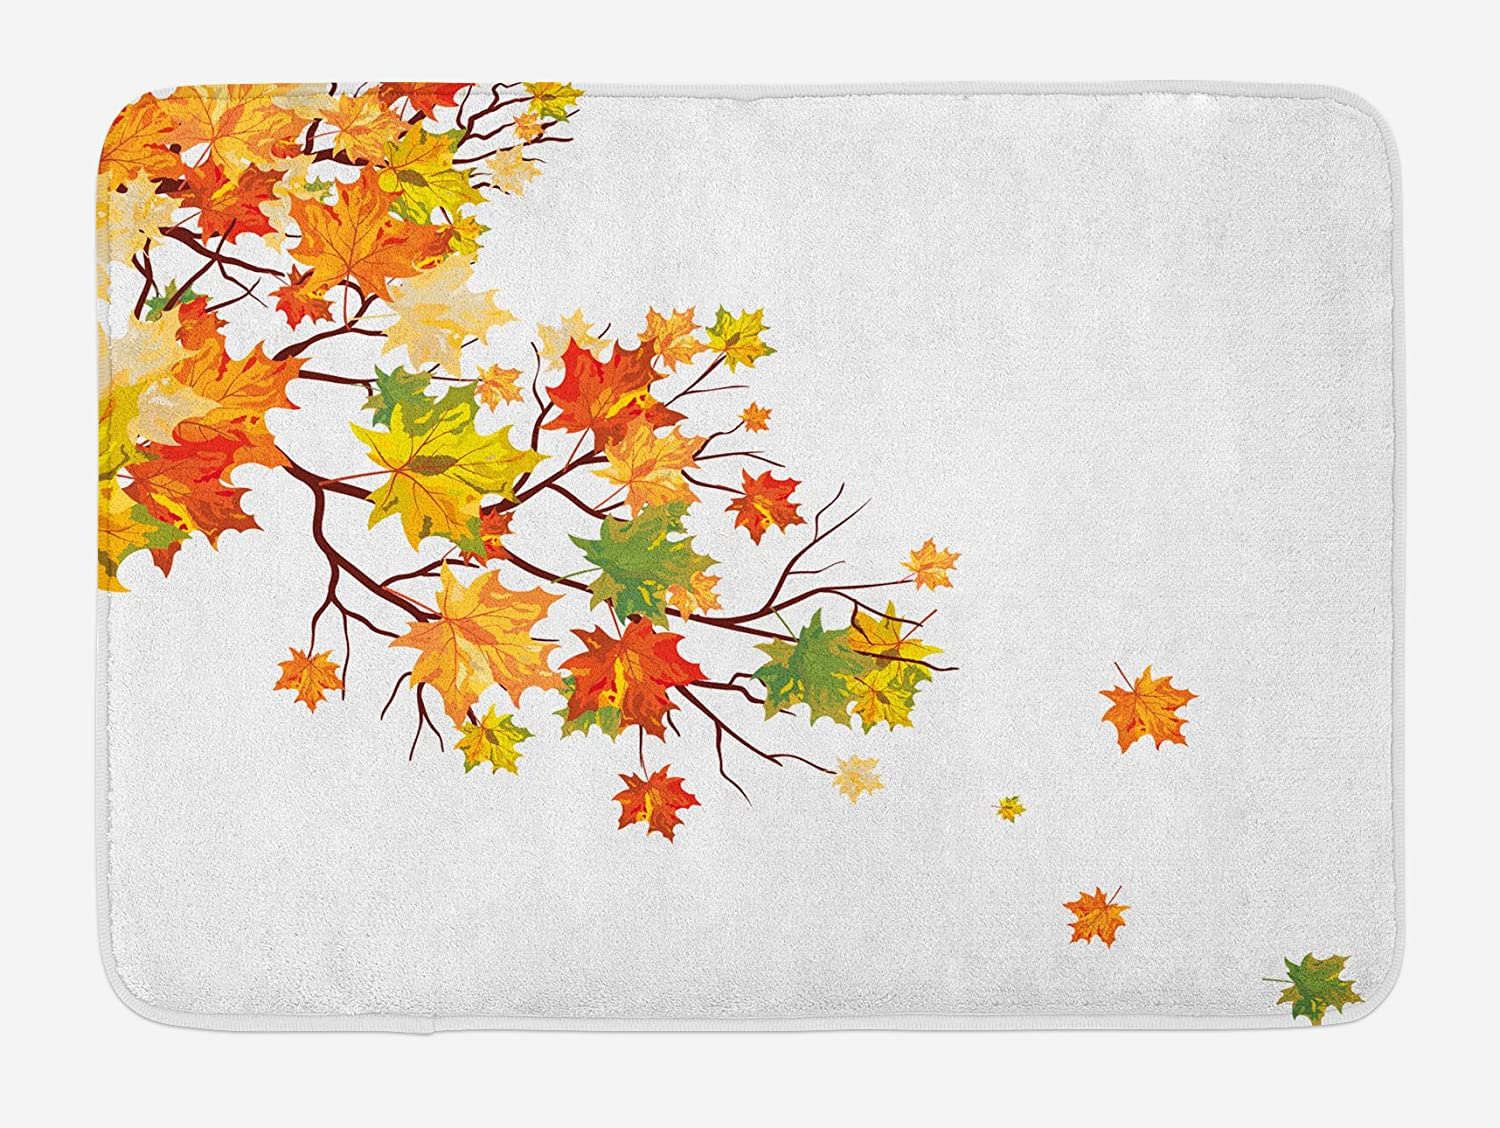 Ambesonne Fall Bath Mat, Fall Image with Canadian Maple Leaves Botanical Foliage Nature Warm to Cold Effects, Plush Bathroom Decor Mat with Non Slip Backing, 29.5